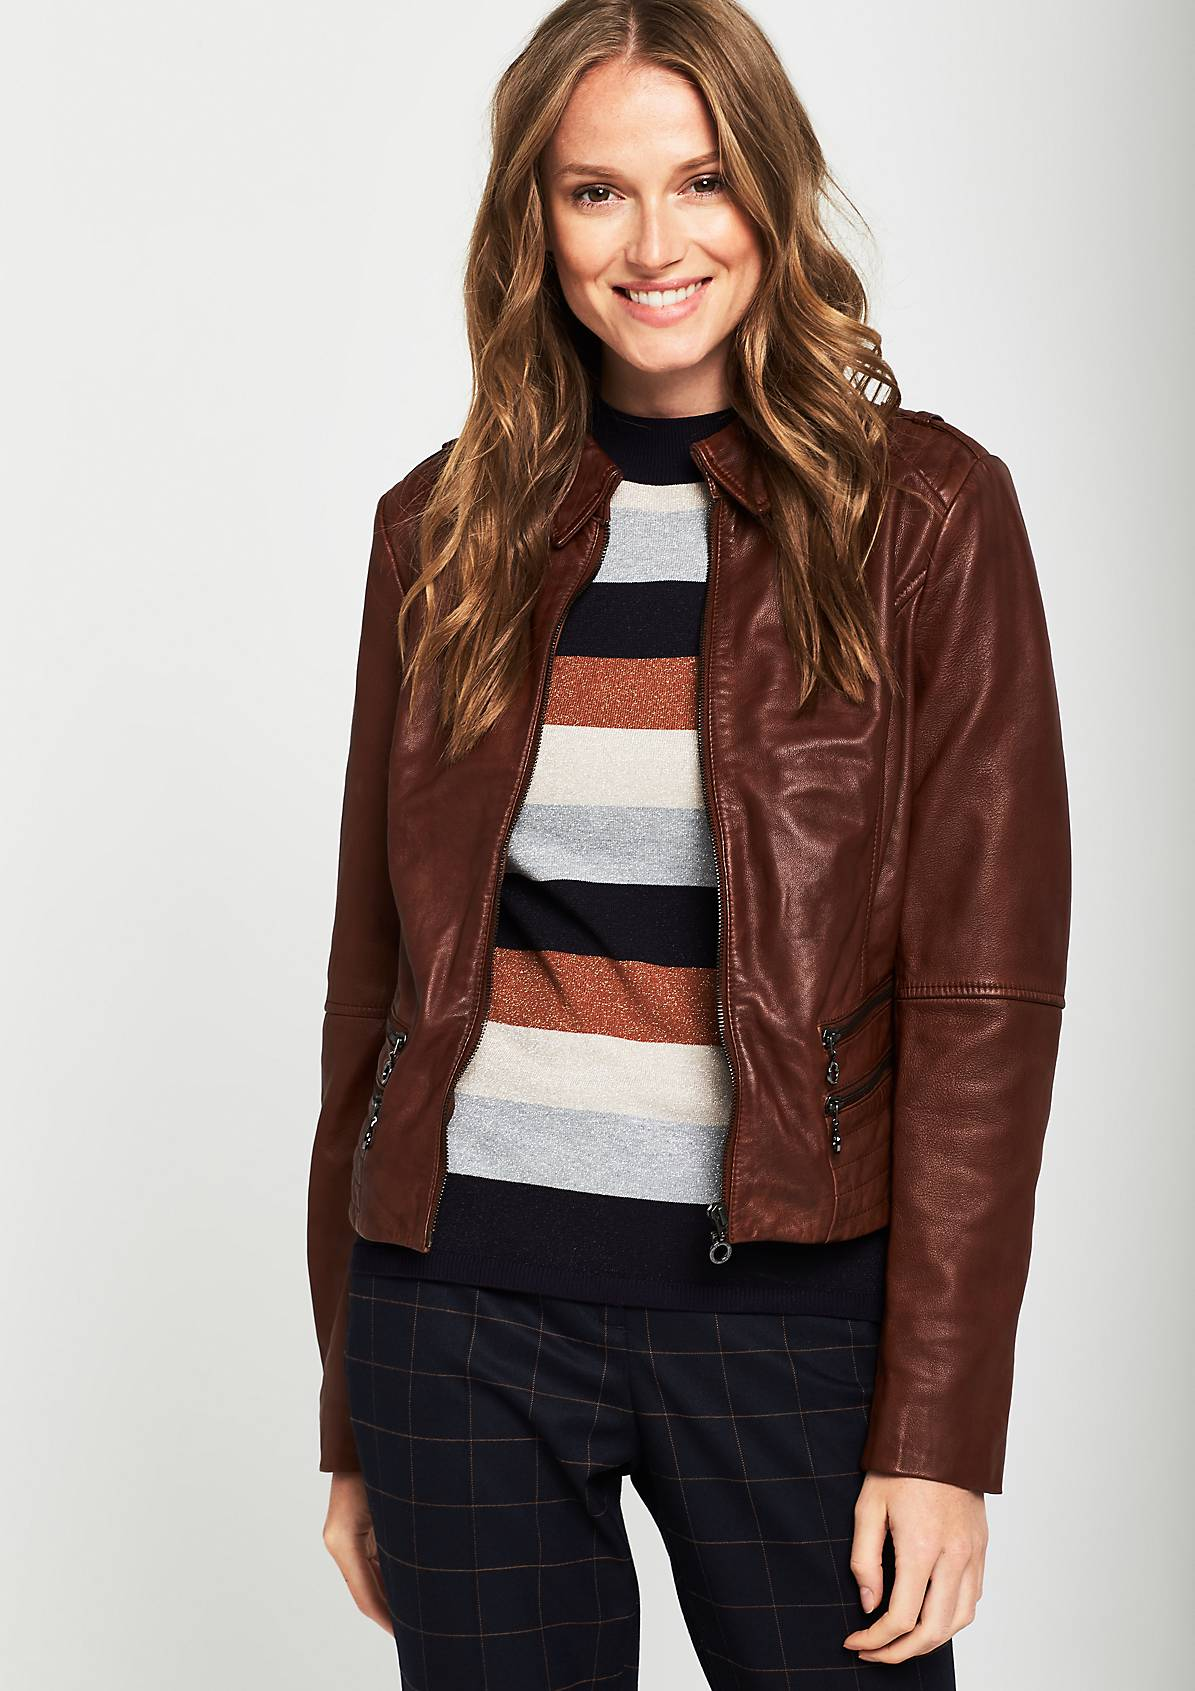 Leather Jackets for Women | comma Fashion